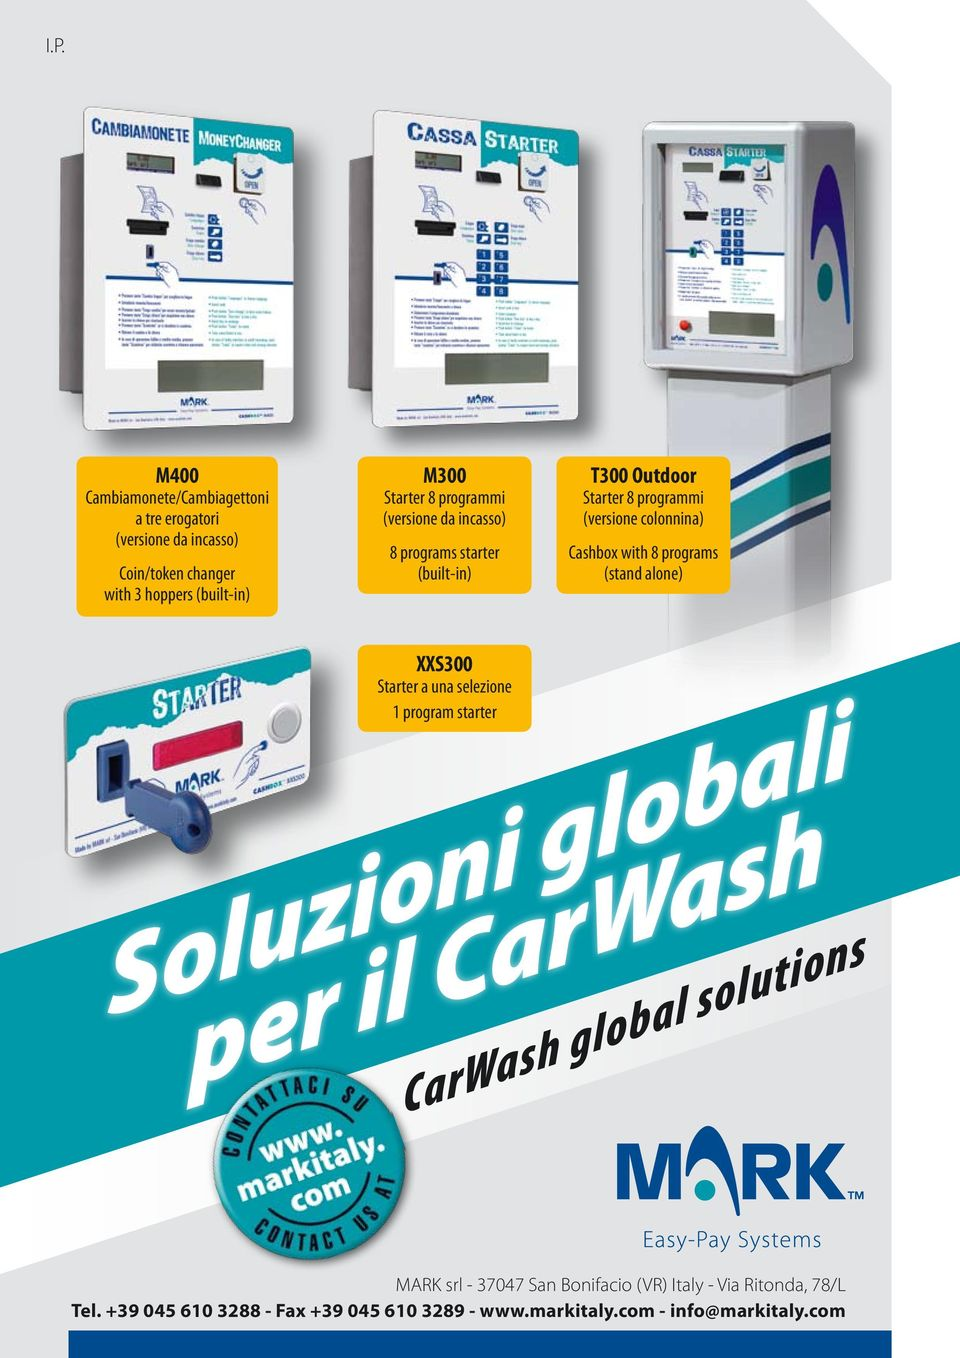 programs (stand alone) XXS300 Starter a una selezione 1 program starter Soluzioni globali per il CarWash CarWash global solutions MARK